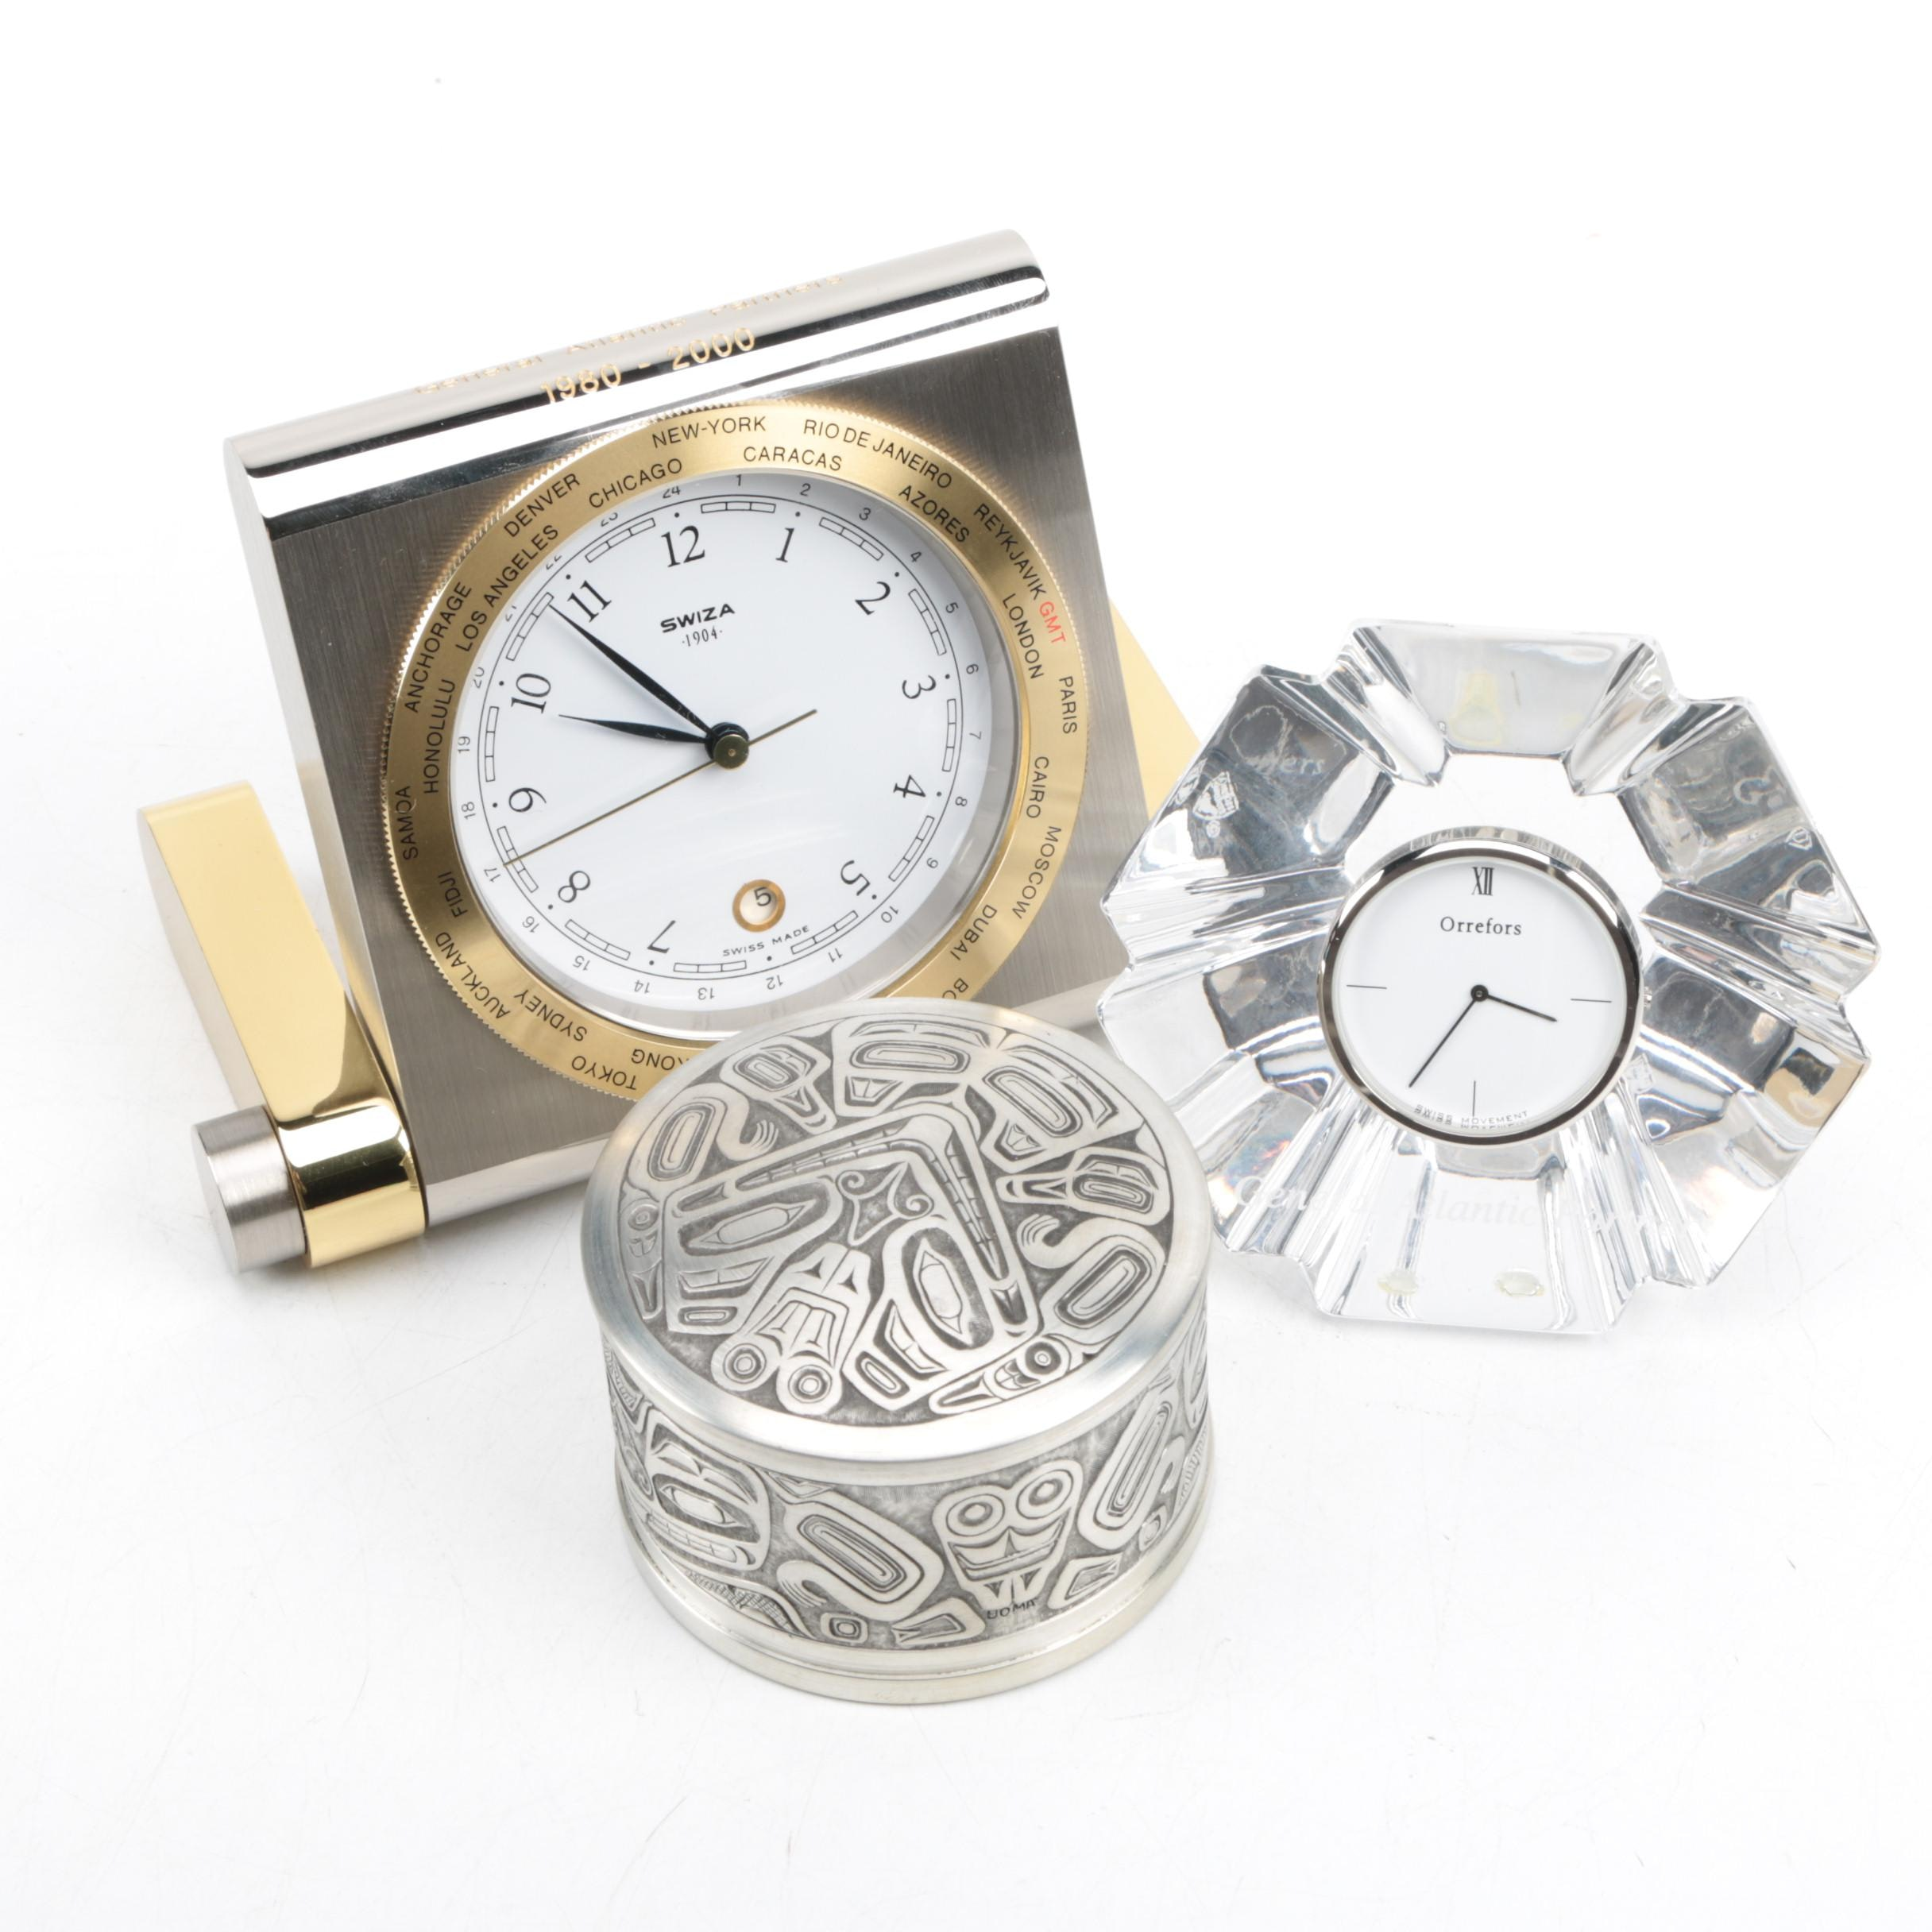 Orrefors Crystal Clock, Trinket Box, and World Clock